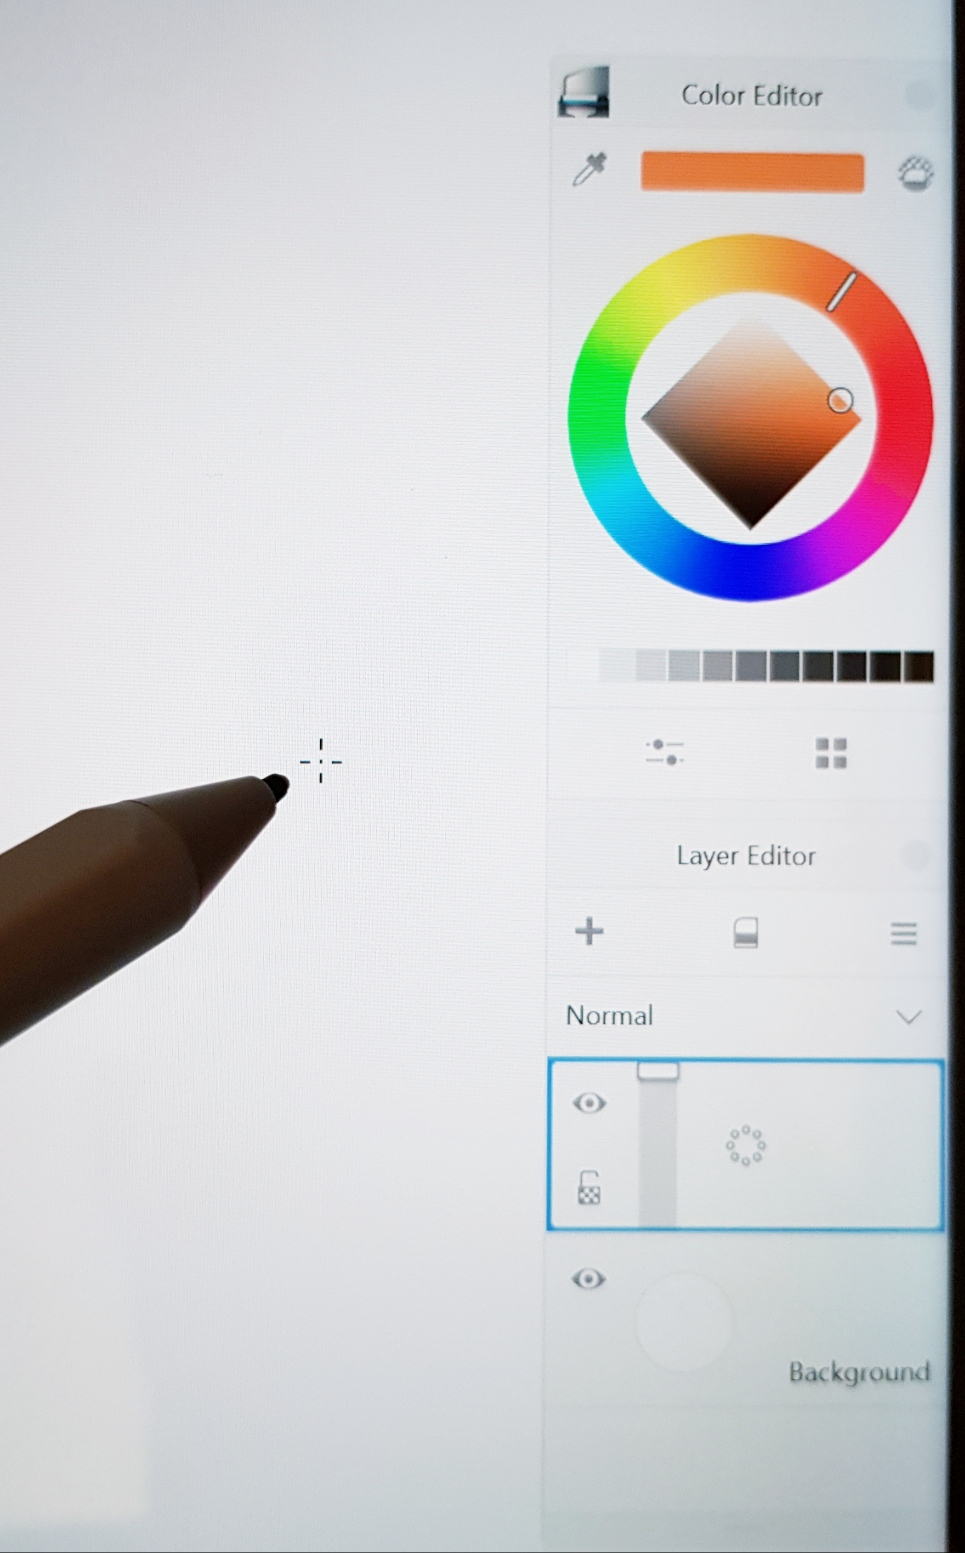 How to turn off crosshair visibility on Autodesk Sketchbook